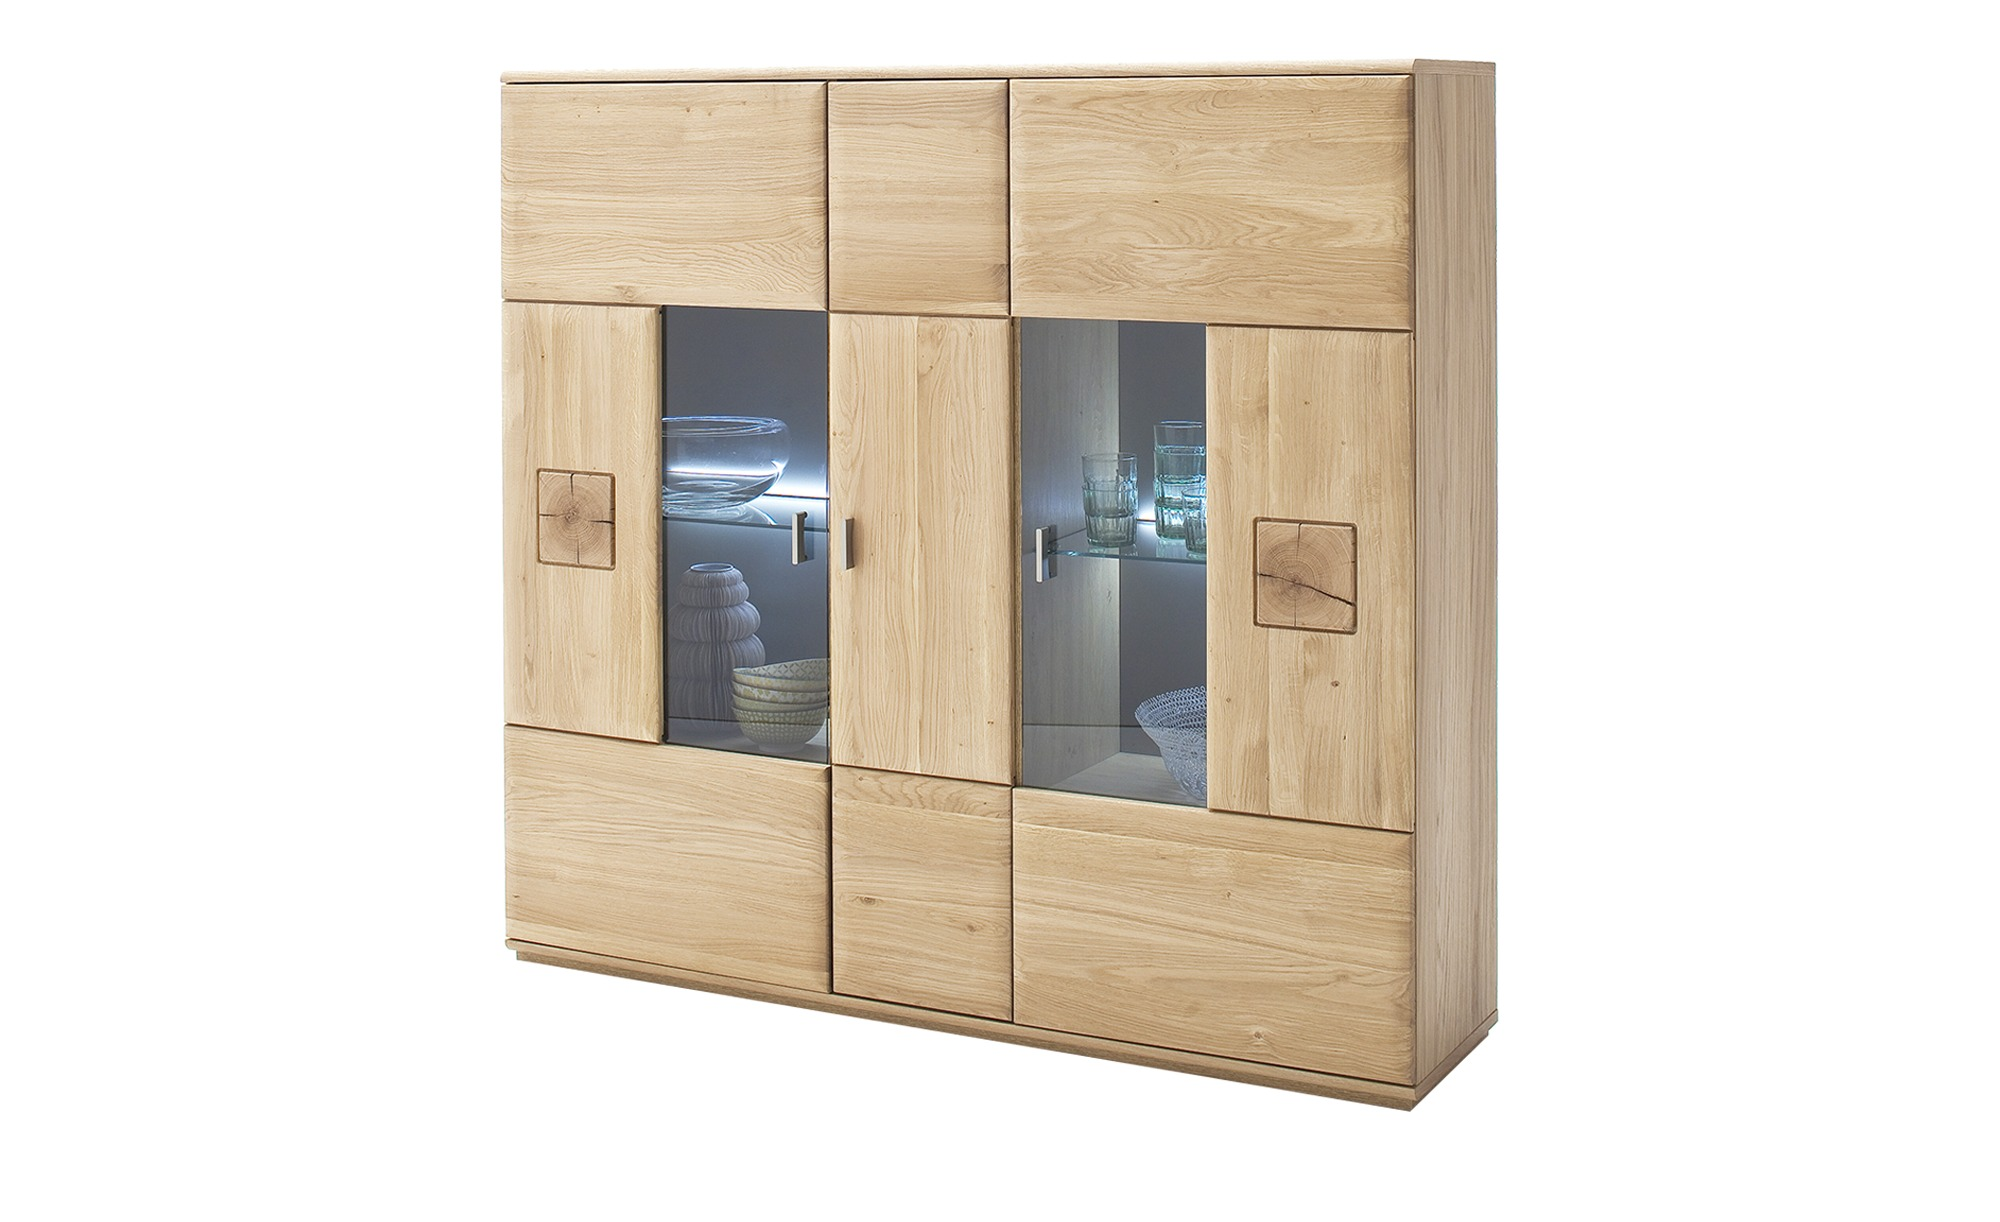 Woodford Highboard  Loggia ¦ holzfarben ¦ Maße (cm): B: 150 H: 141 T: 38 Kommoden & Sideboards > Highboards - Höffner